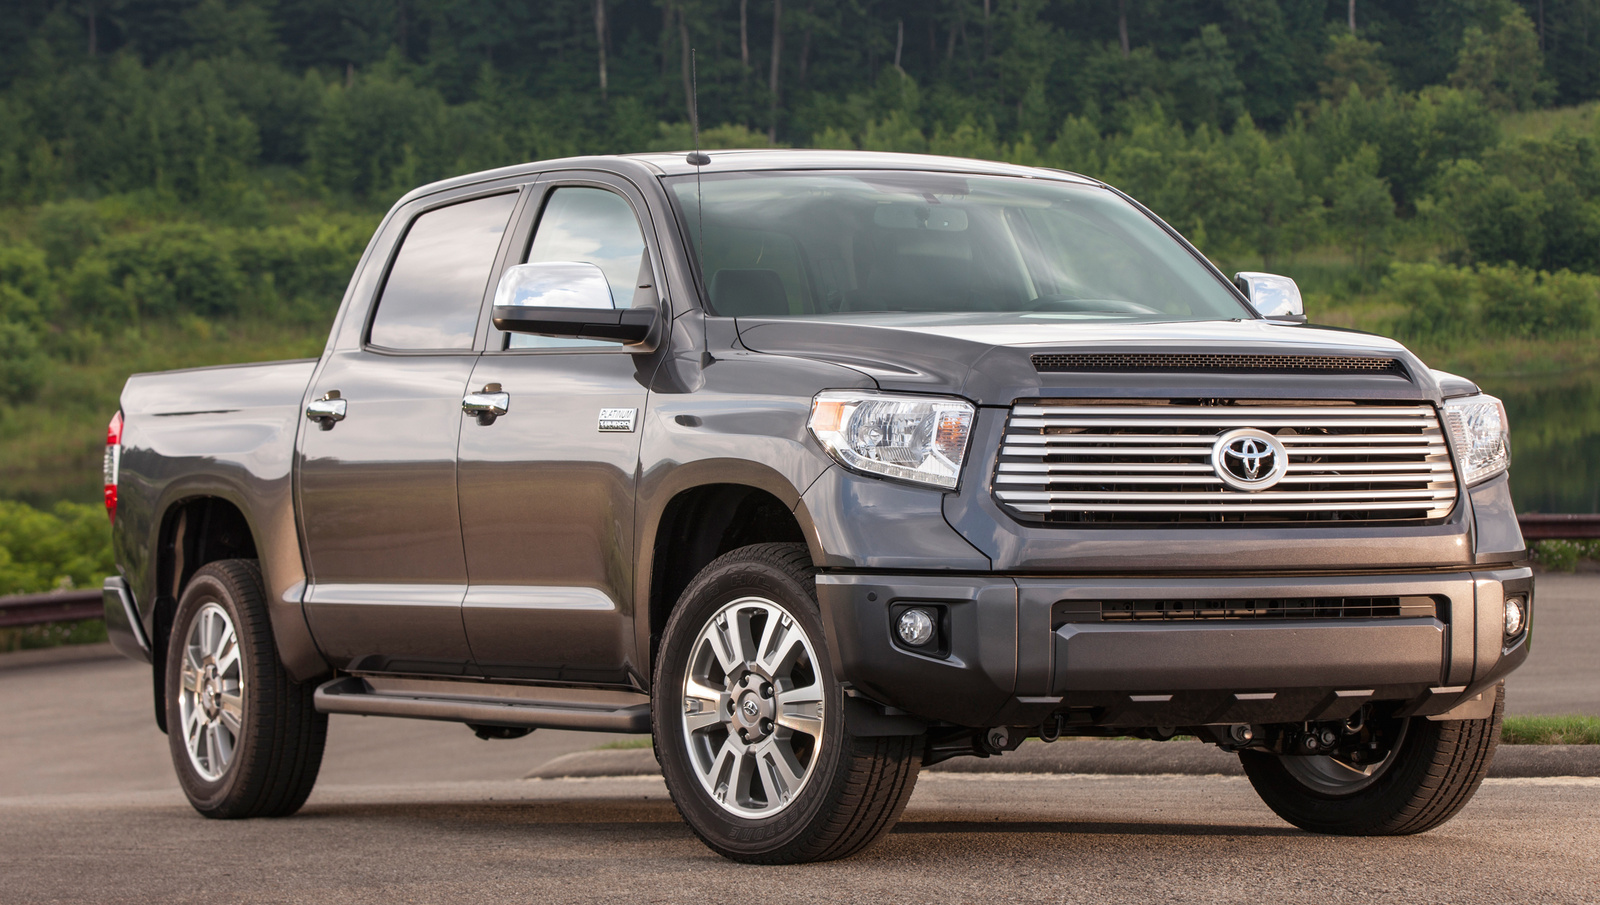 2017 toyota tundra - overview - cargurus